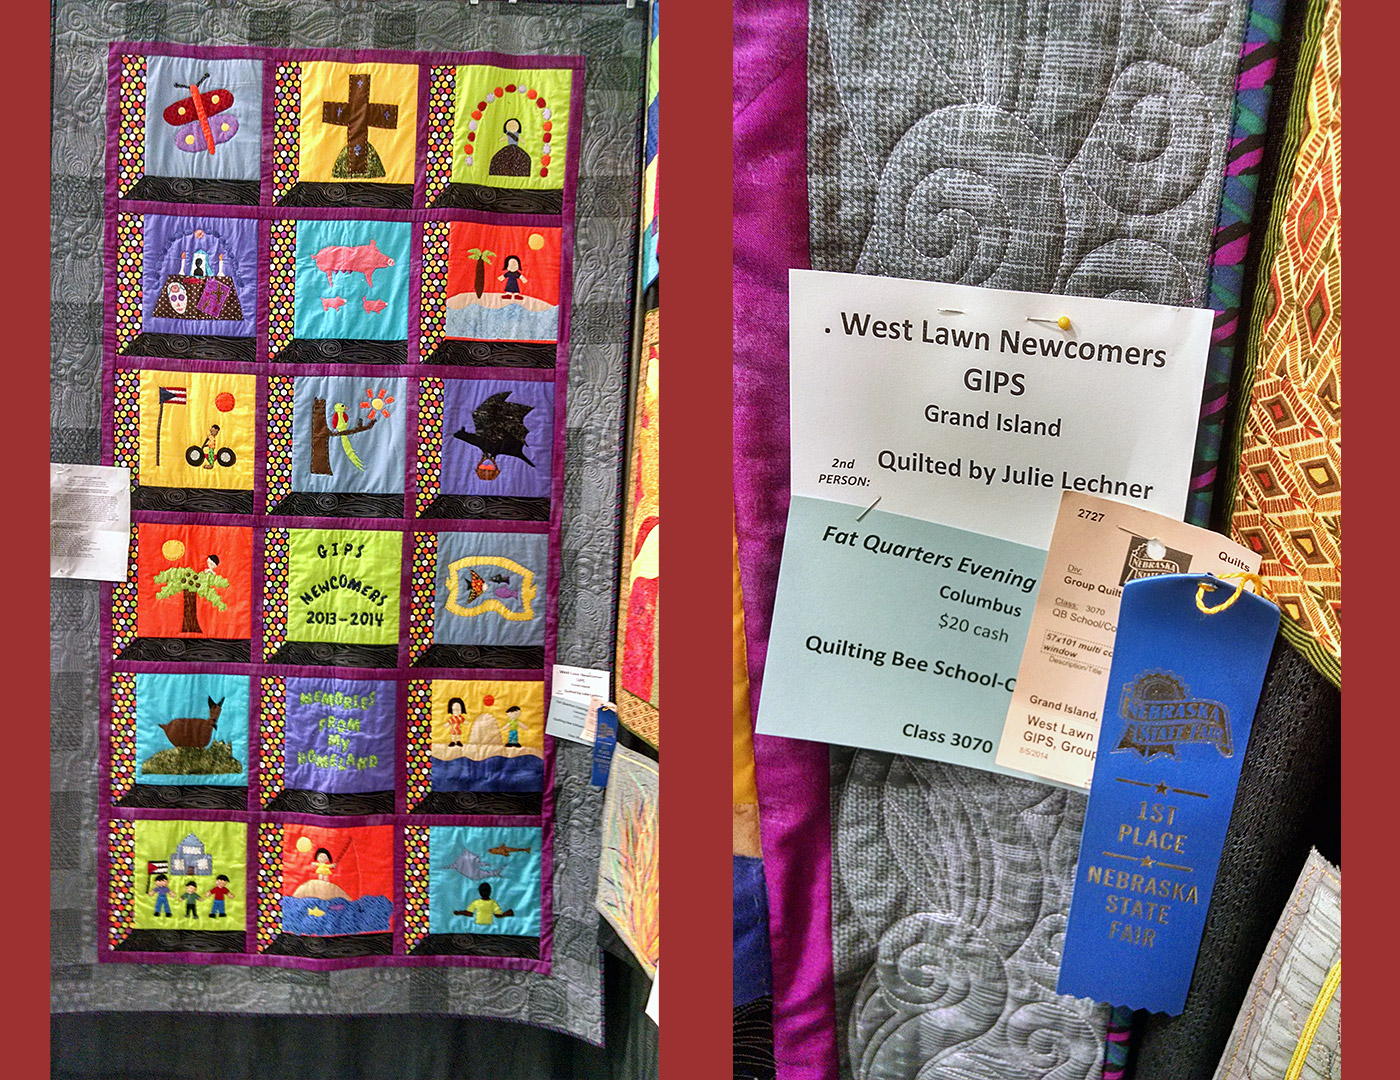 2013-2014 Newcomers Quilt & Nebraska State Fair First Place Blue Ribbon Courtesy Tracy Morrow